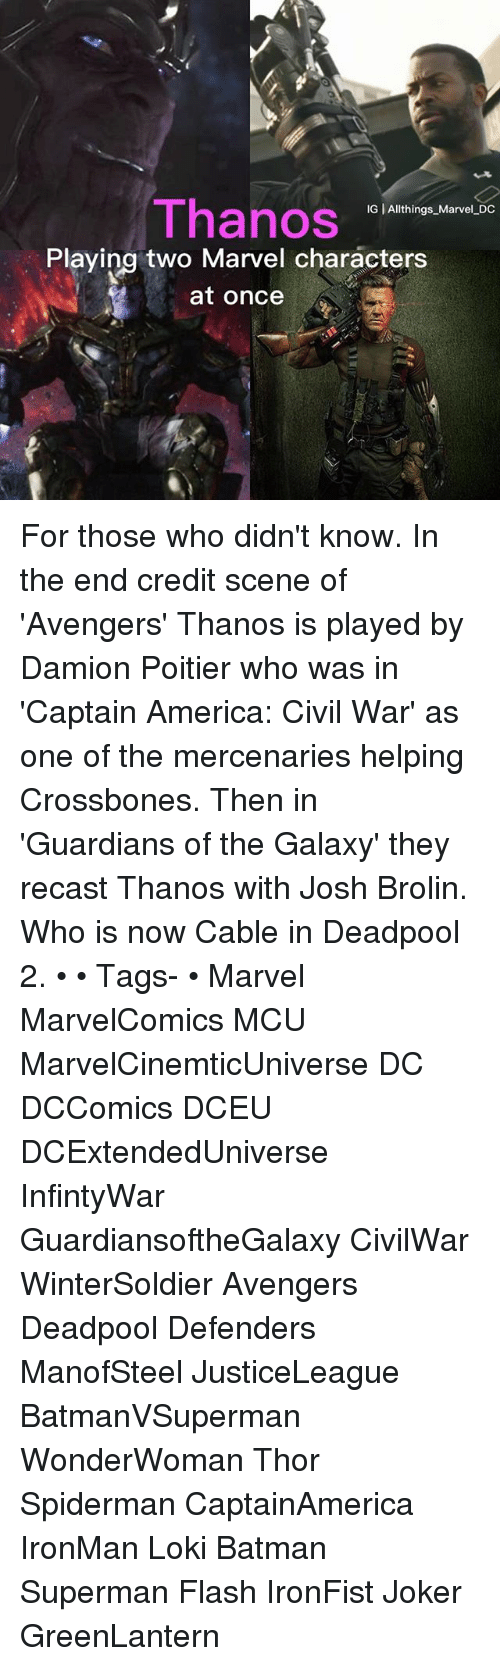 Lokie: Thanos  IG | Allthings Marvel DC  Playing two Marvel characters  at once For those who didn't know. In the end credit scene of 'Avengers' Thanos is played by Damion Poitier who was in 'Captain America: Civil War' as one of the mercenaries helping Crossbones. Then in 'Guardians of the Galaxy' they recast Thanos with Josh Brolin. Who is now Cable in Deadpool 2. • • Tags- • Marvel MarvelComics MCU MarvelCinemticUniverse DC DCComics DCEU DCExtendedUniverse InfintyWar GuardiansoftheGalaxy CivilWar WinterSoldier Avengers Deadpool Defenders ManofSteel JusticeLeague BatmanVSuperman WonderWoman Thor Spiderman CaptainAmerica IronMan Loki Batman Superman Flash IronFist Joker GreenLantern